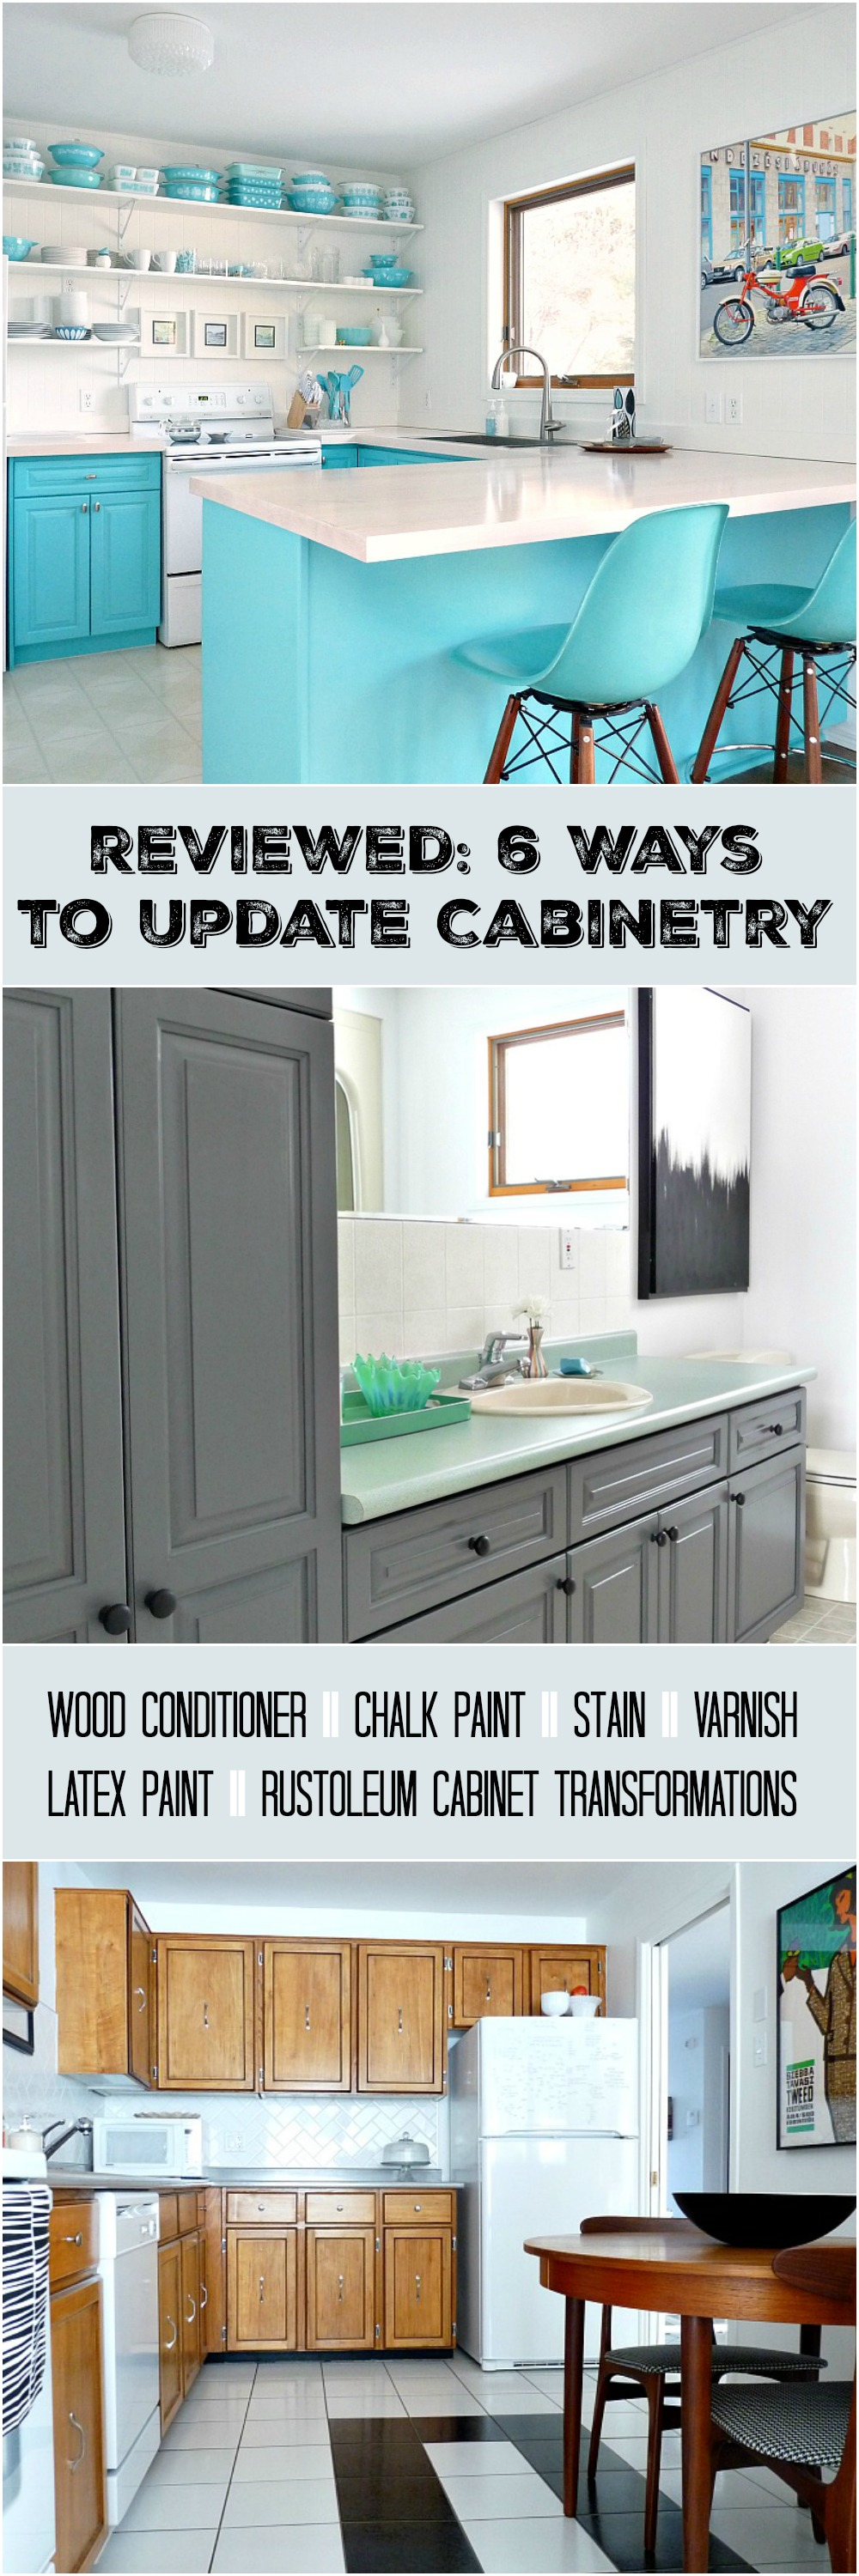 Cabinet Refinishing 101 Latex Paint Vs Stain Rust Oleum Transformations Varnish Chalk Wood Conditioner